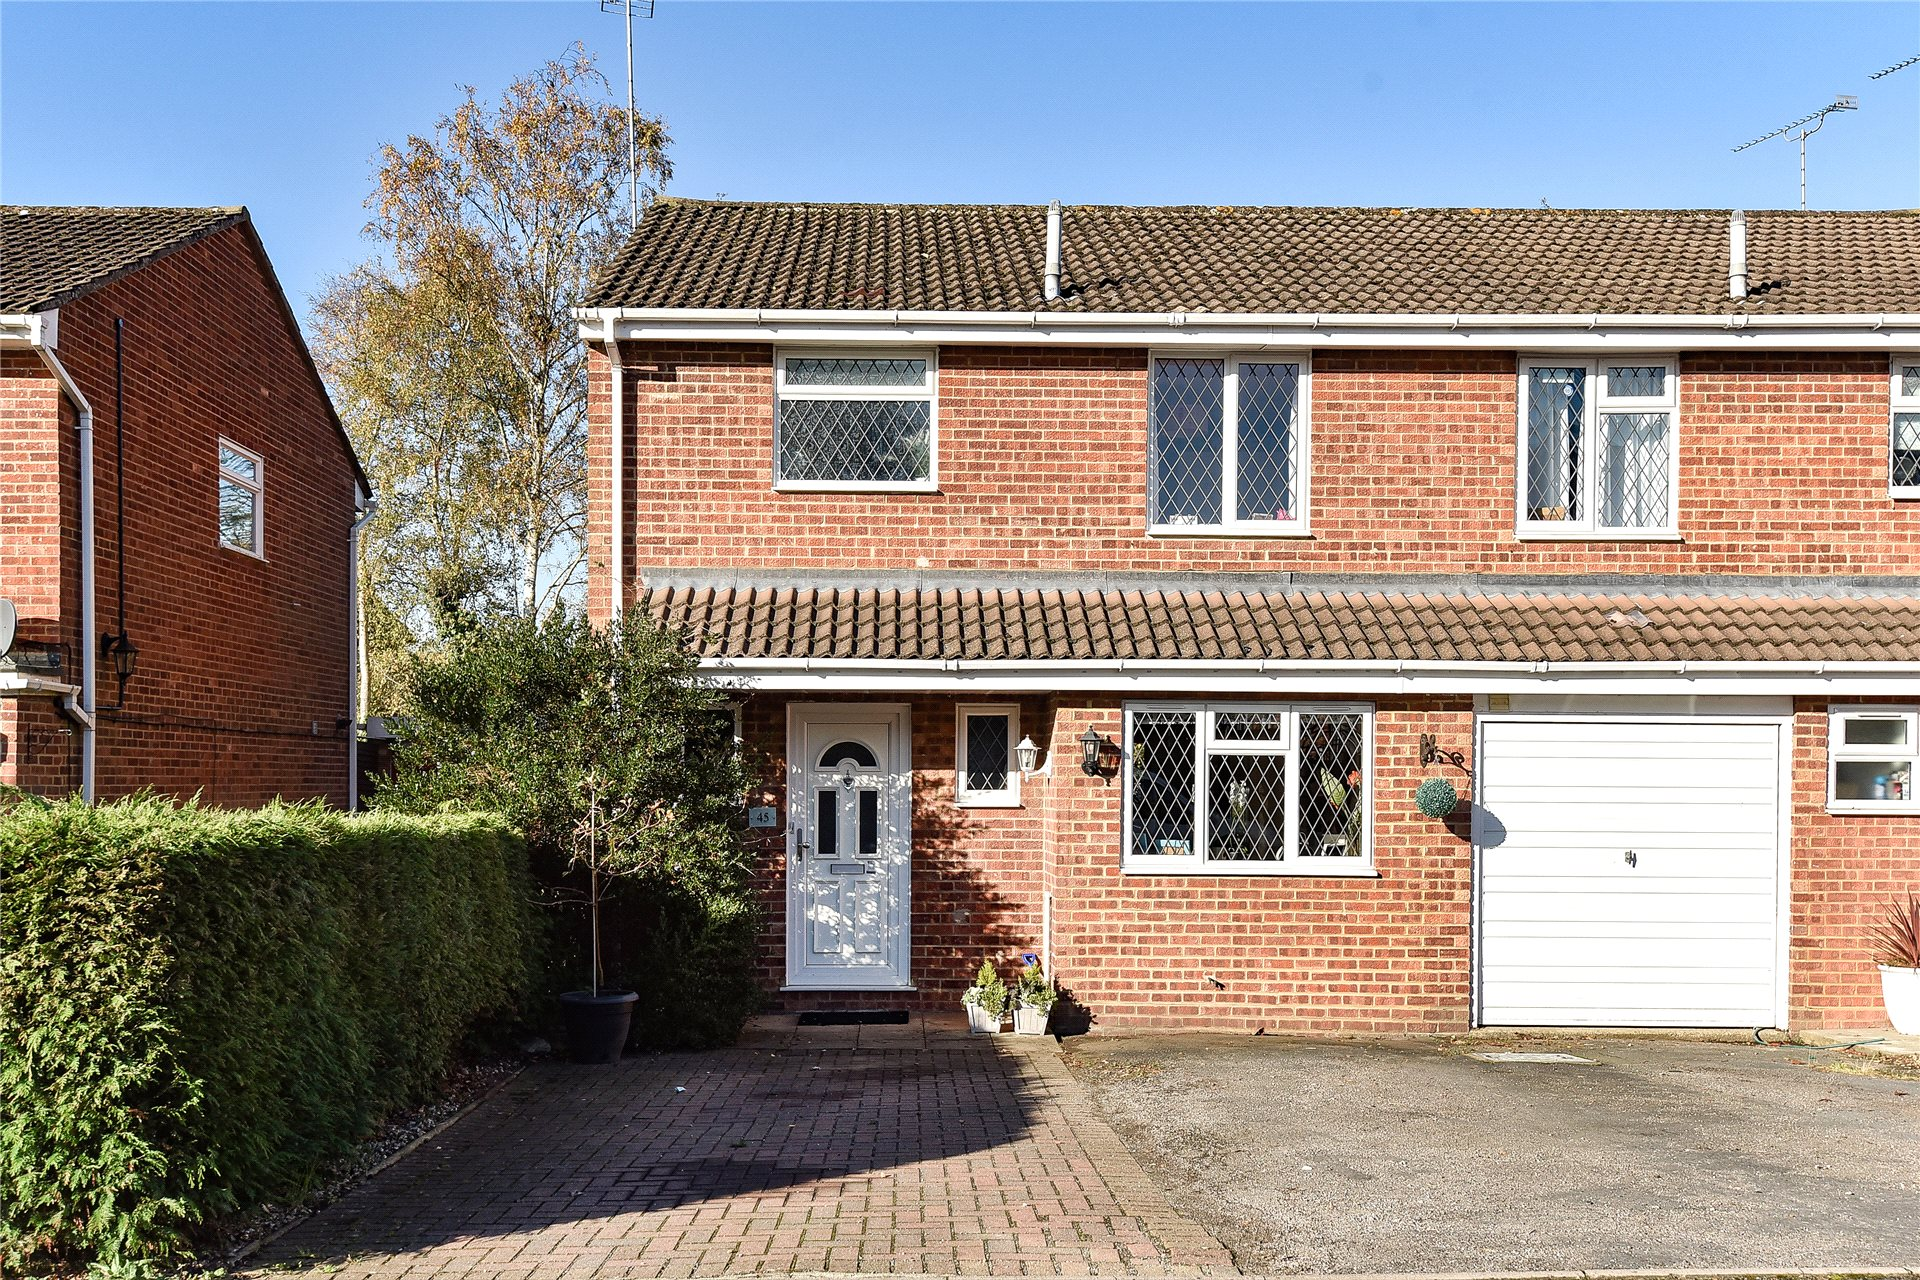 3 Bedrooms End Of Terrace House for sale in Birkbeck Place, Owlsmoor, Sandhurst, Berkshire, GU47